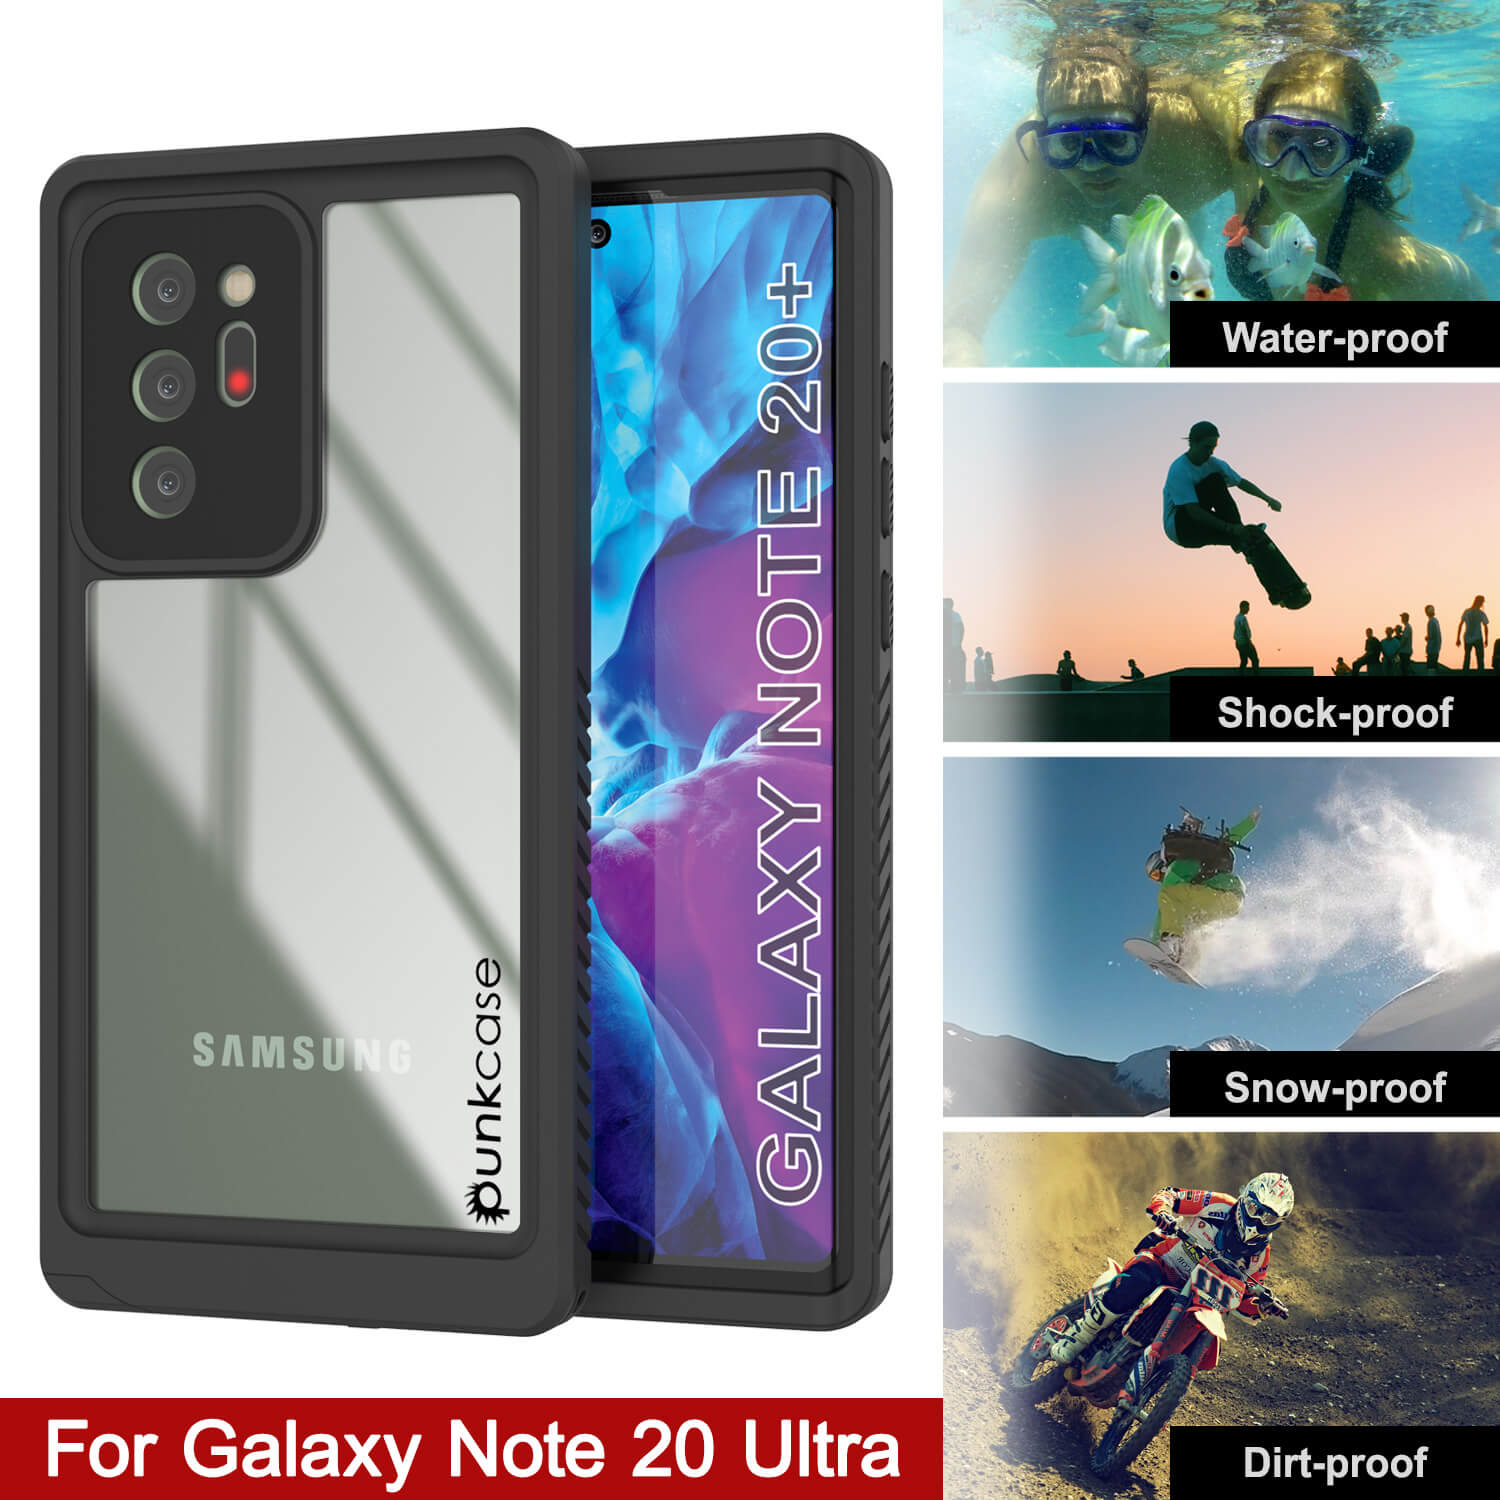 Galaxy Note 20 Ultra Case, Punkcase [Extreme Series] Armor Cover W/ Built In Screen Protector [Clear]